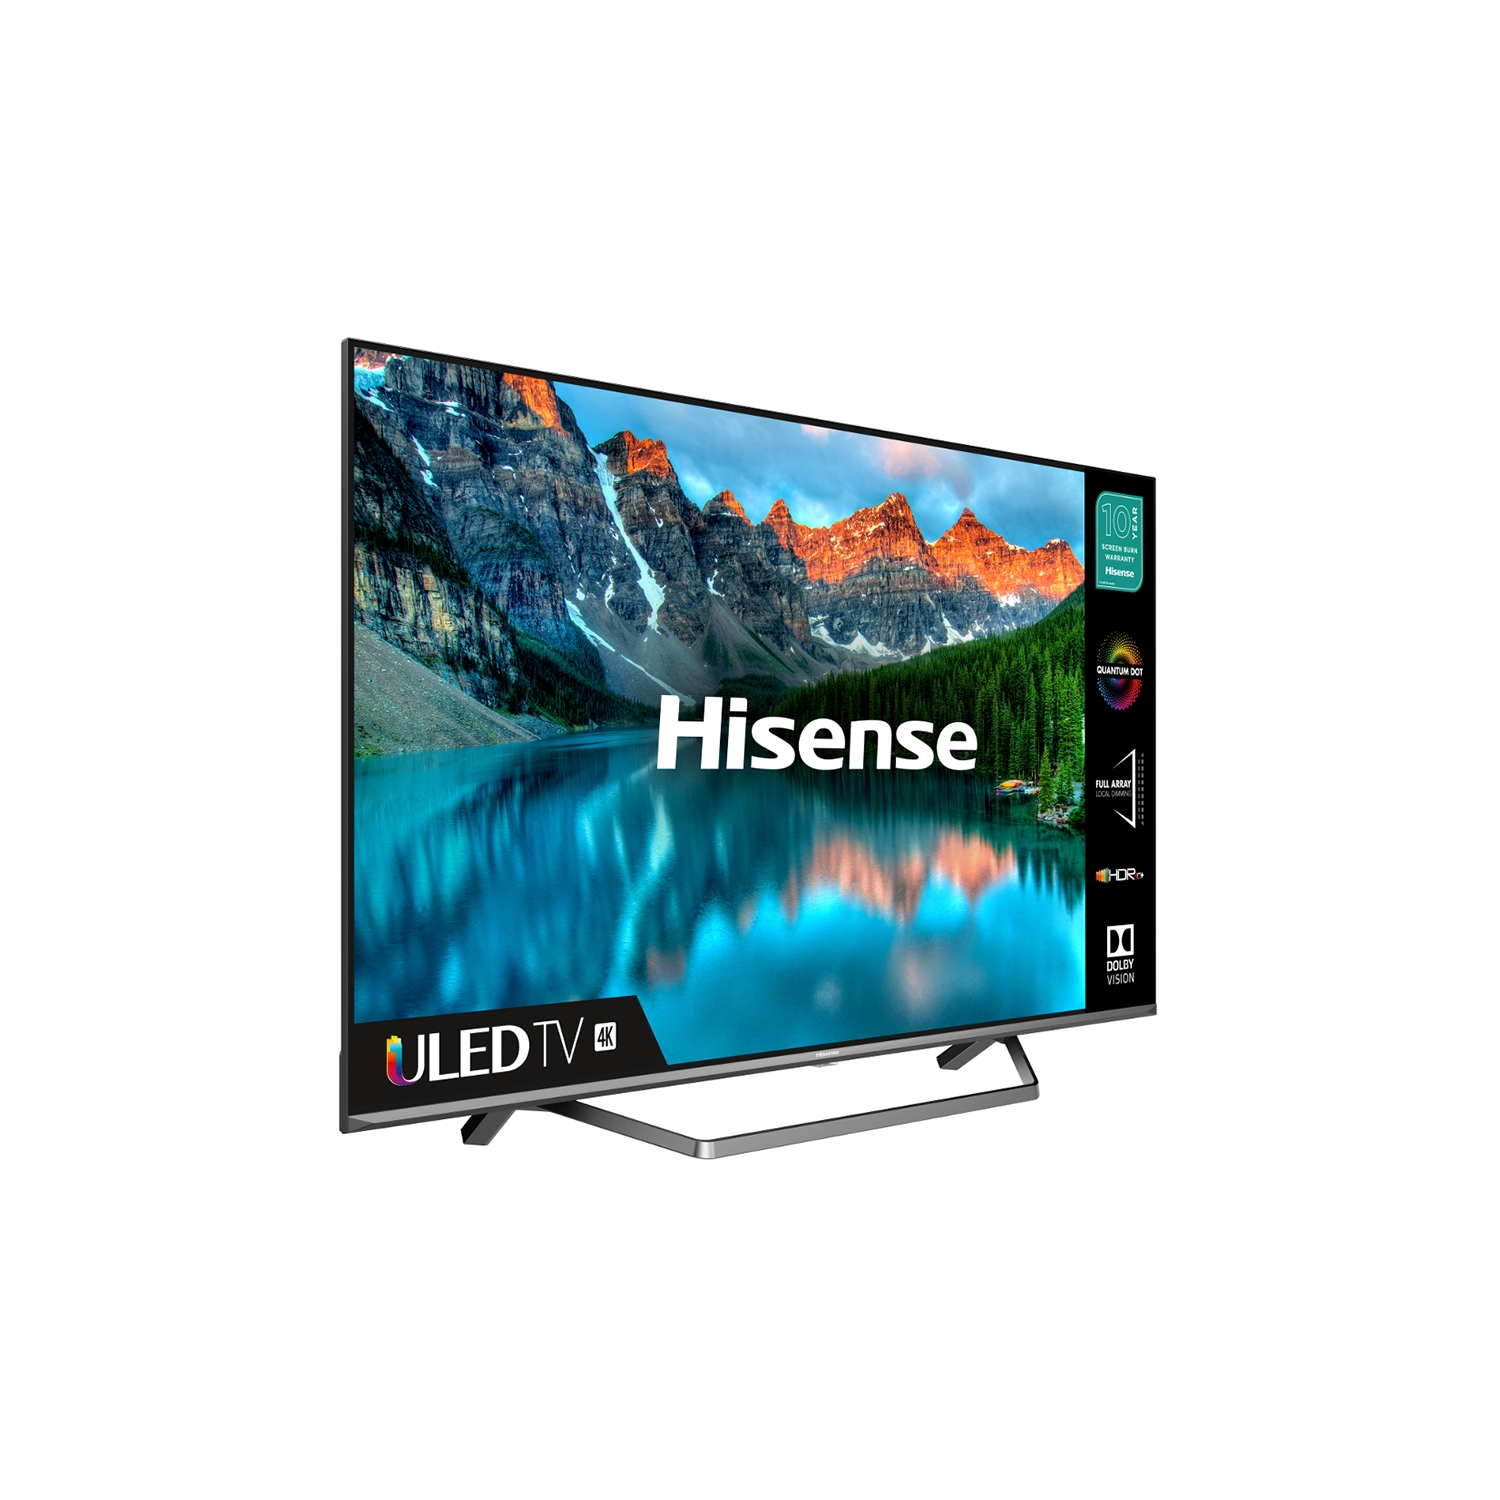 "Hisense 50U7QFTUK 50"" 4K Ultra HD LED Smart TV with Dolby Atmos & Dolby Vision - 1"